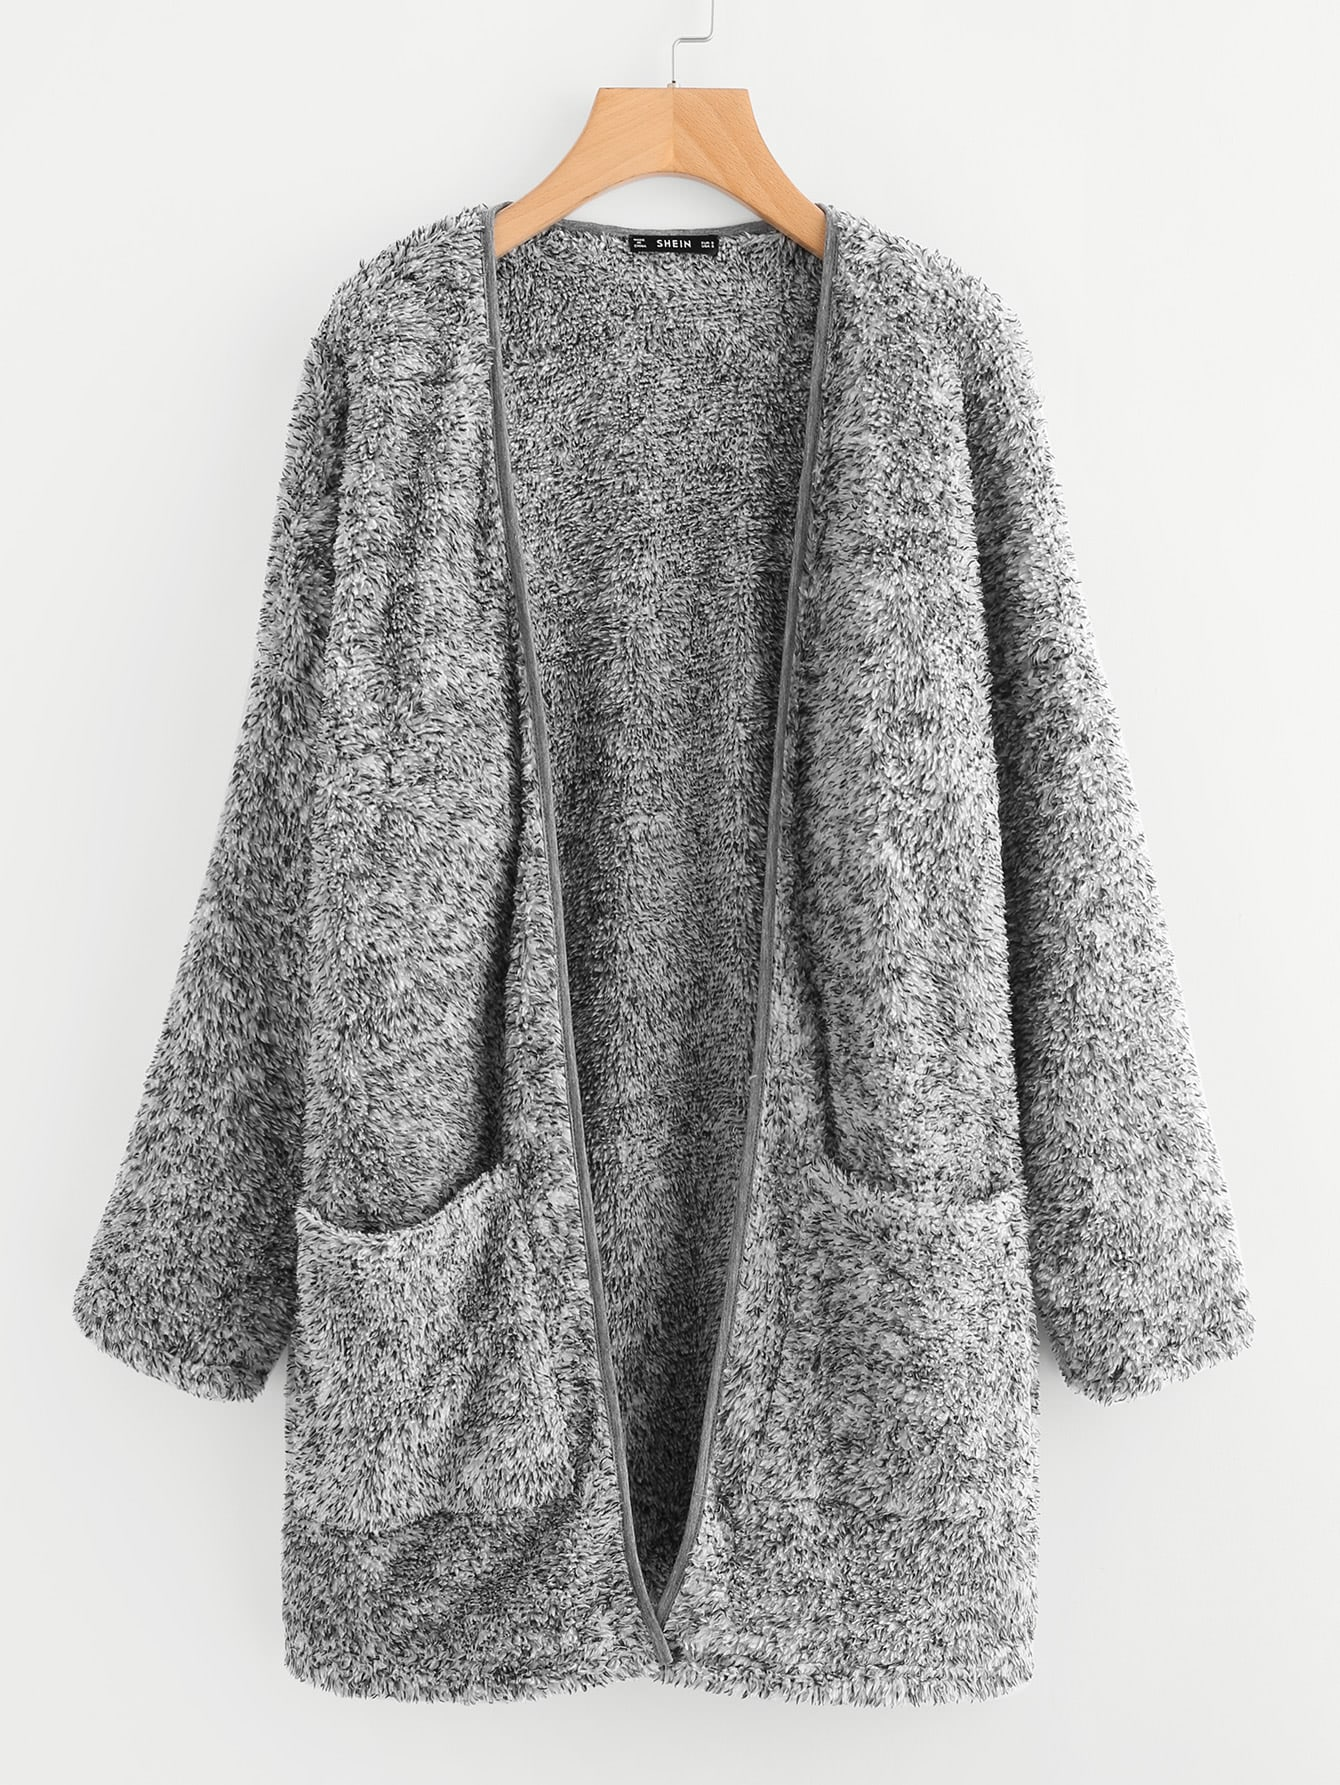 Image of Patch Pocket Open Front Fuzzy Coat